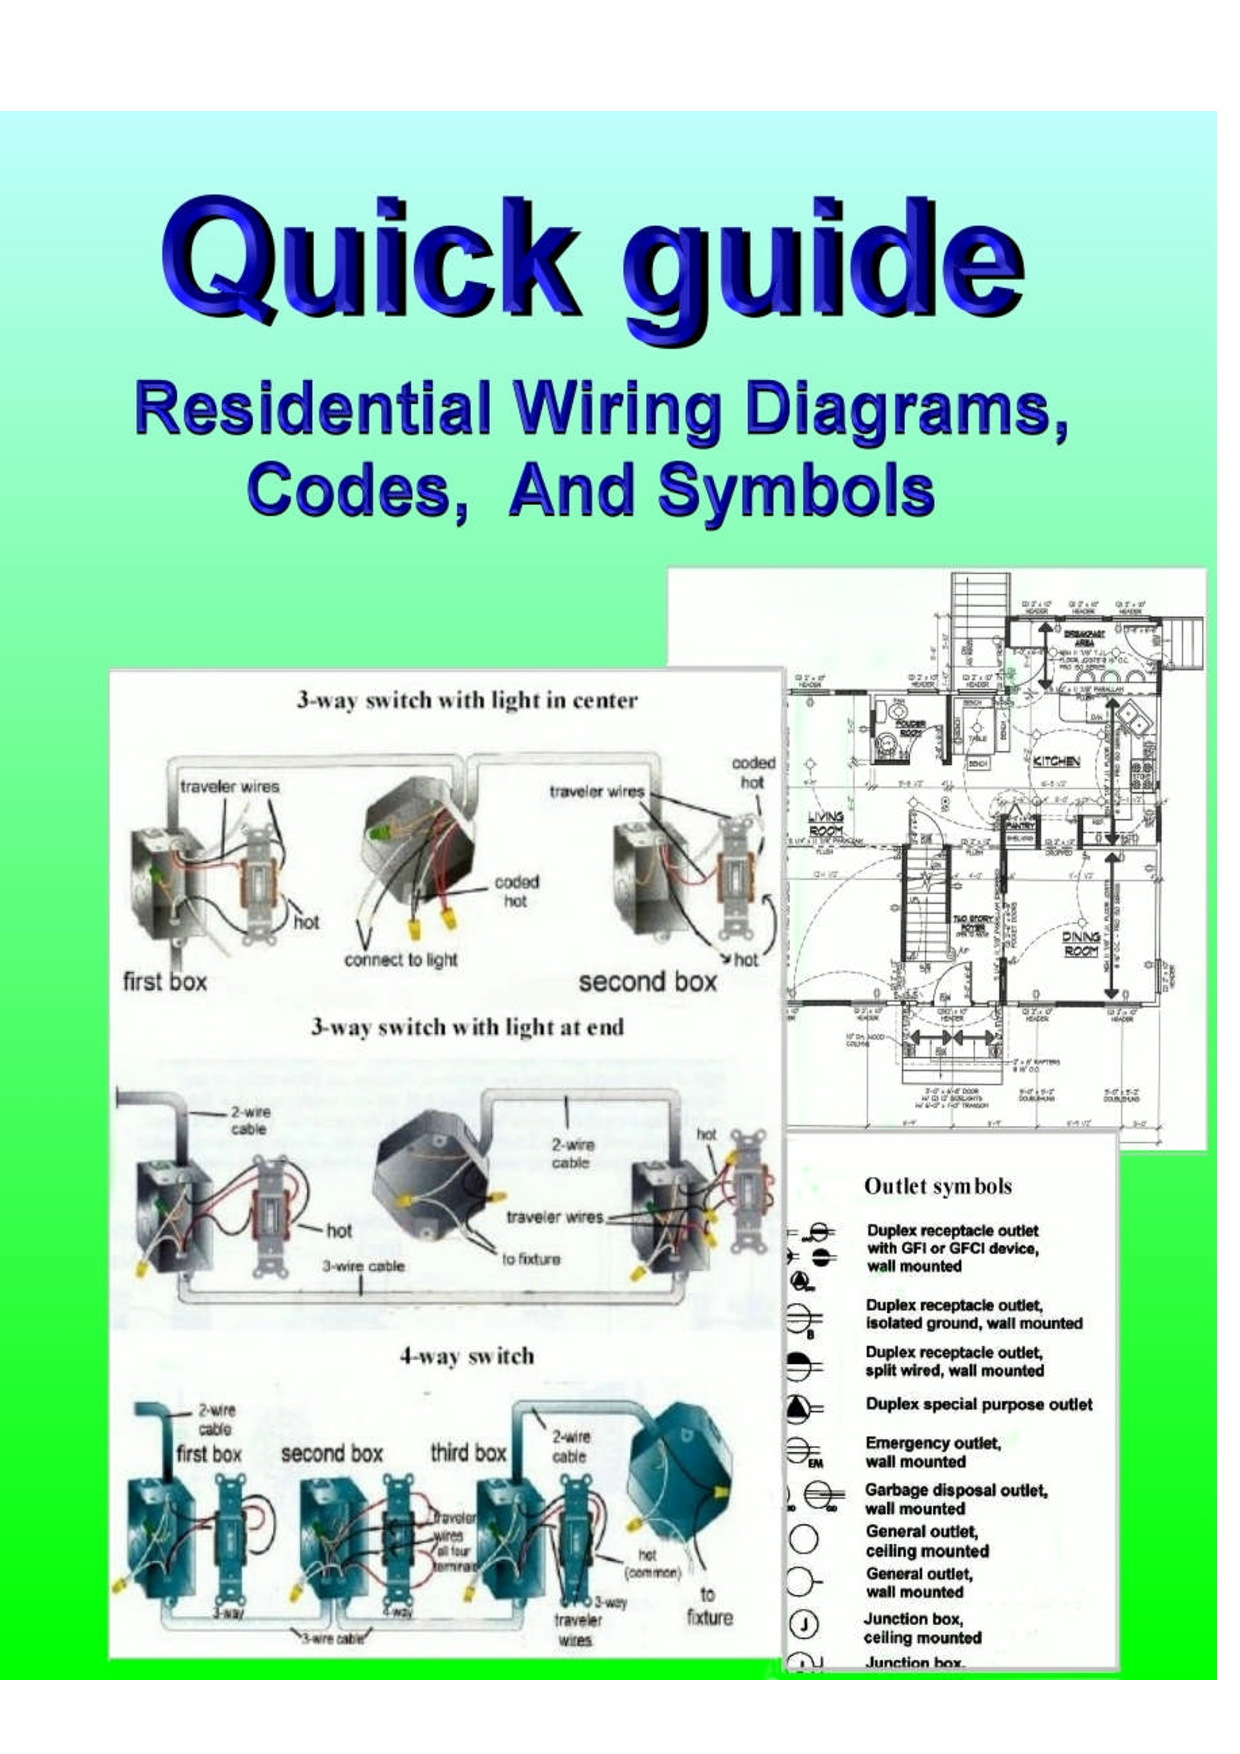 Home electrical wiring diagramspdf download legal documents 39 home electrical wiring diagramspdf download legal documents 39 pages with many diagrams and illustrations a step by step home wiring guide with diagrams asfbconference2016 Images